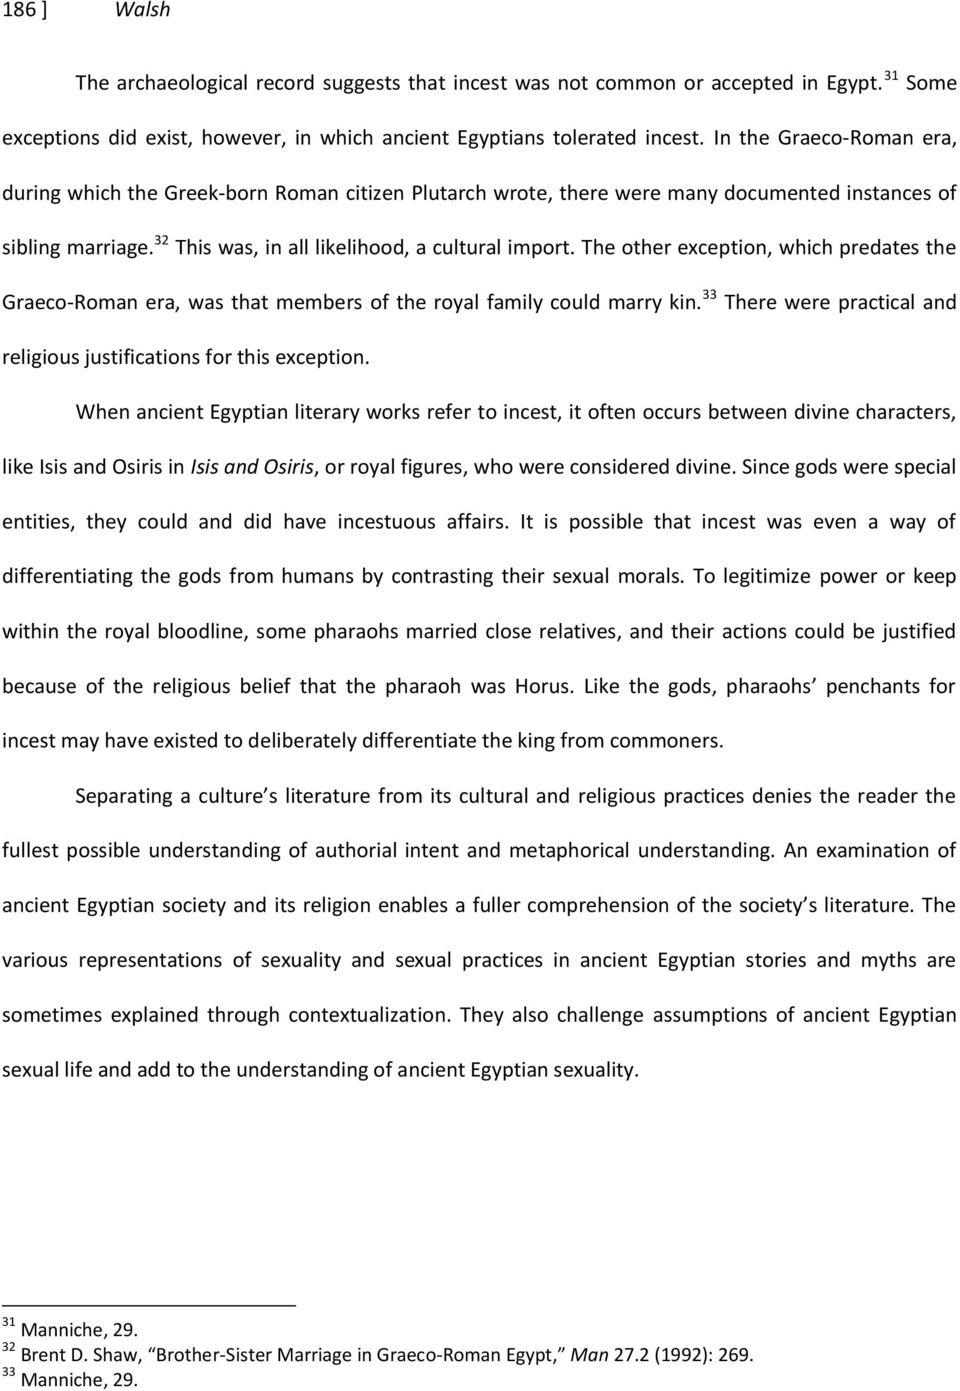 Sexual Morality in Ancient Egyptian Literature - PDF